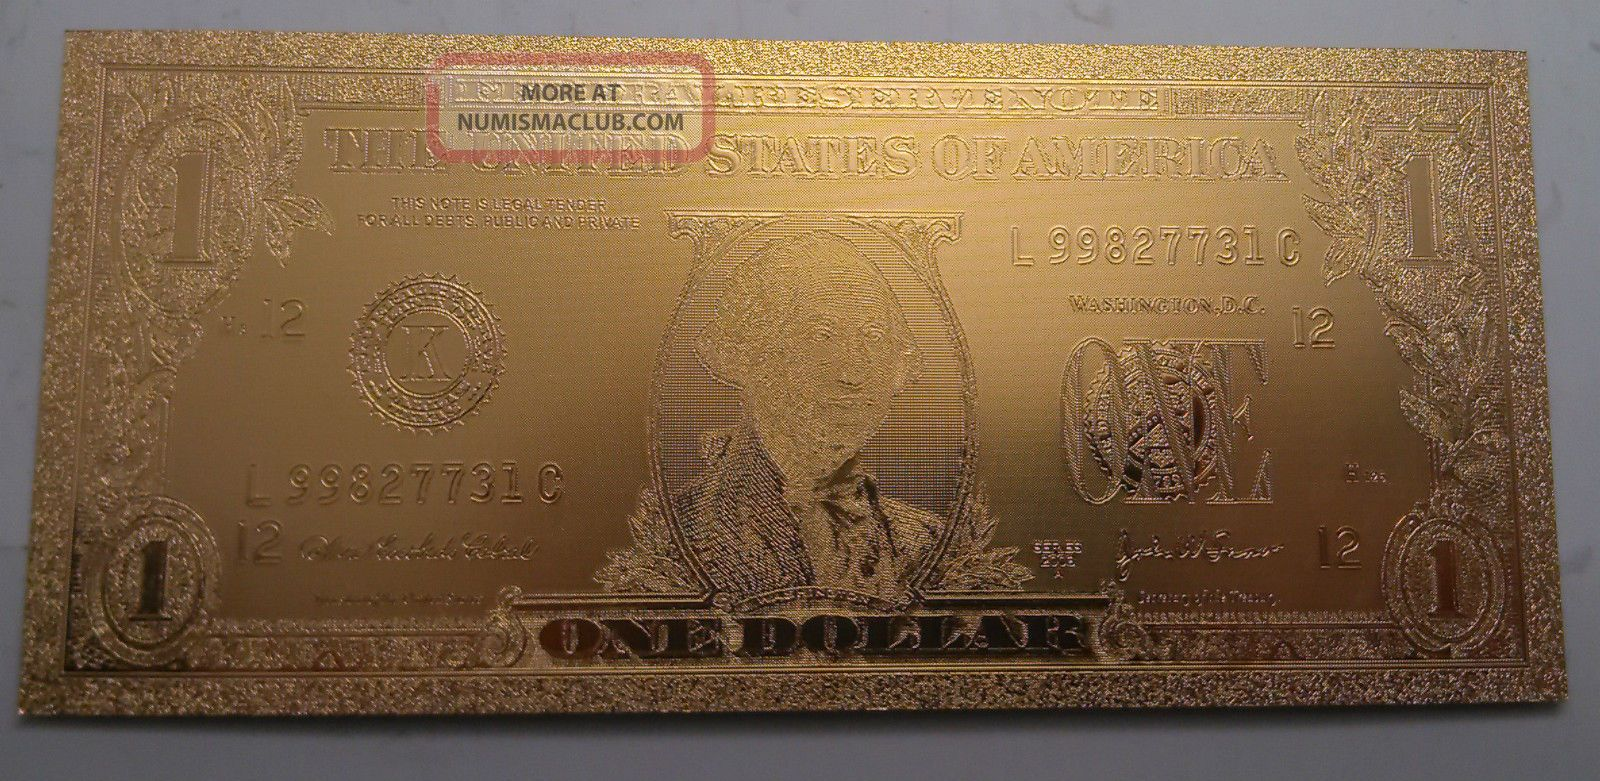 $1 Usd Gold Foil Bill 24kt Gold 9999999 Special Edition Paper Money: US photo